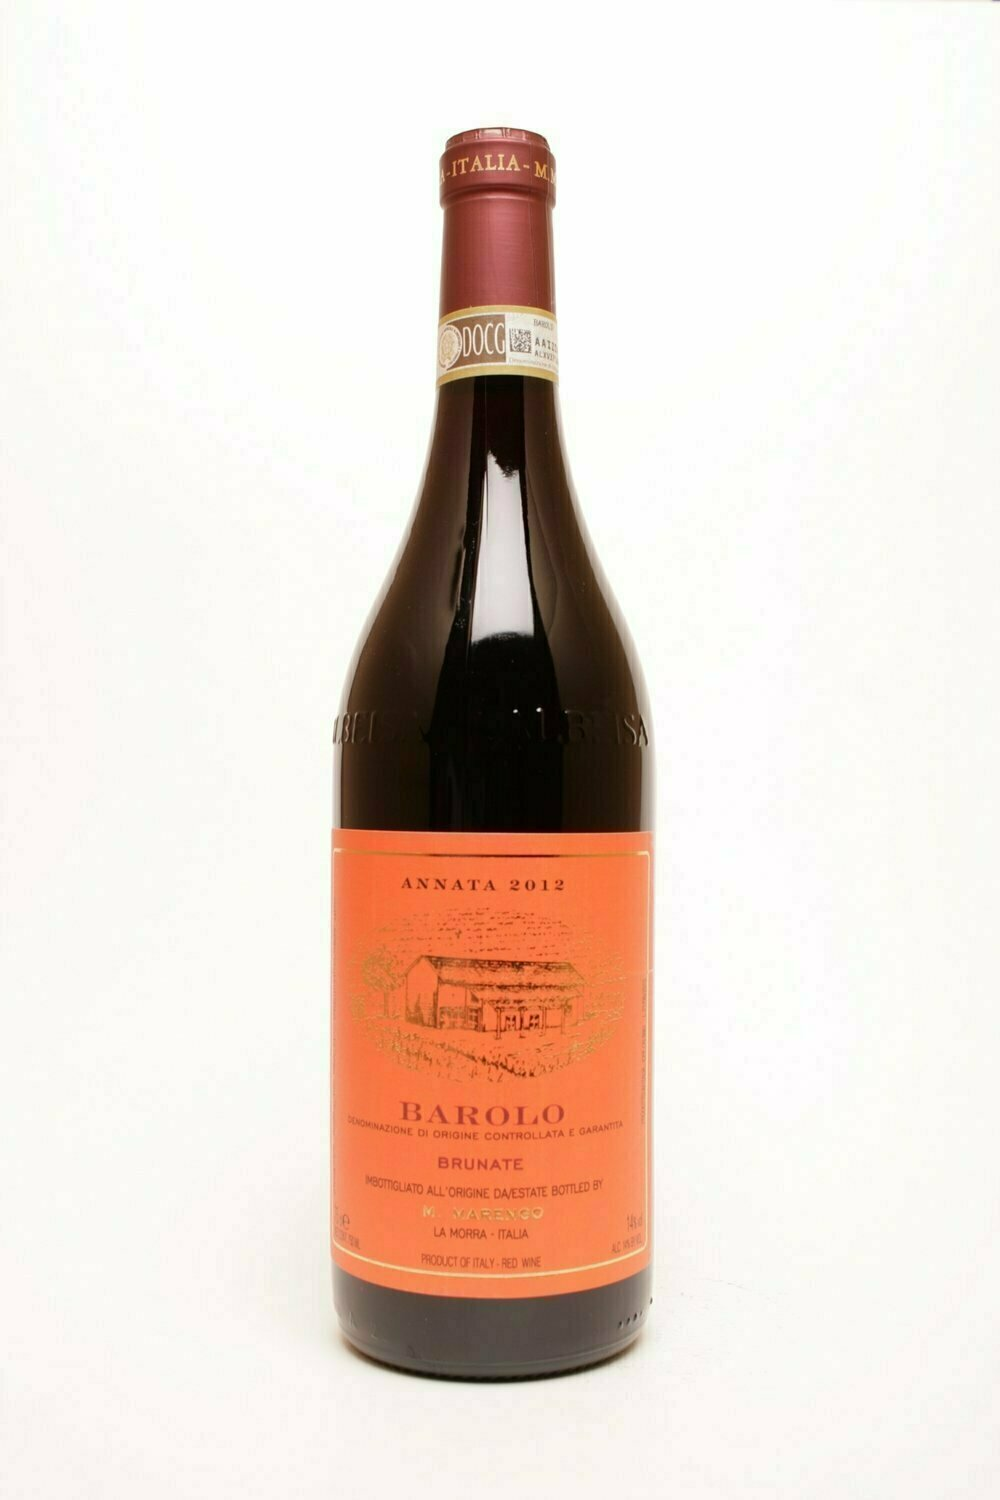 Mario Marengo Barolo Brunate 2011